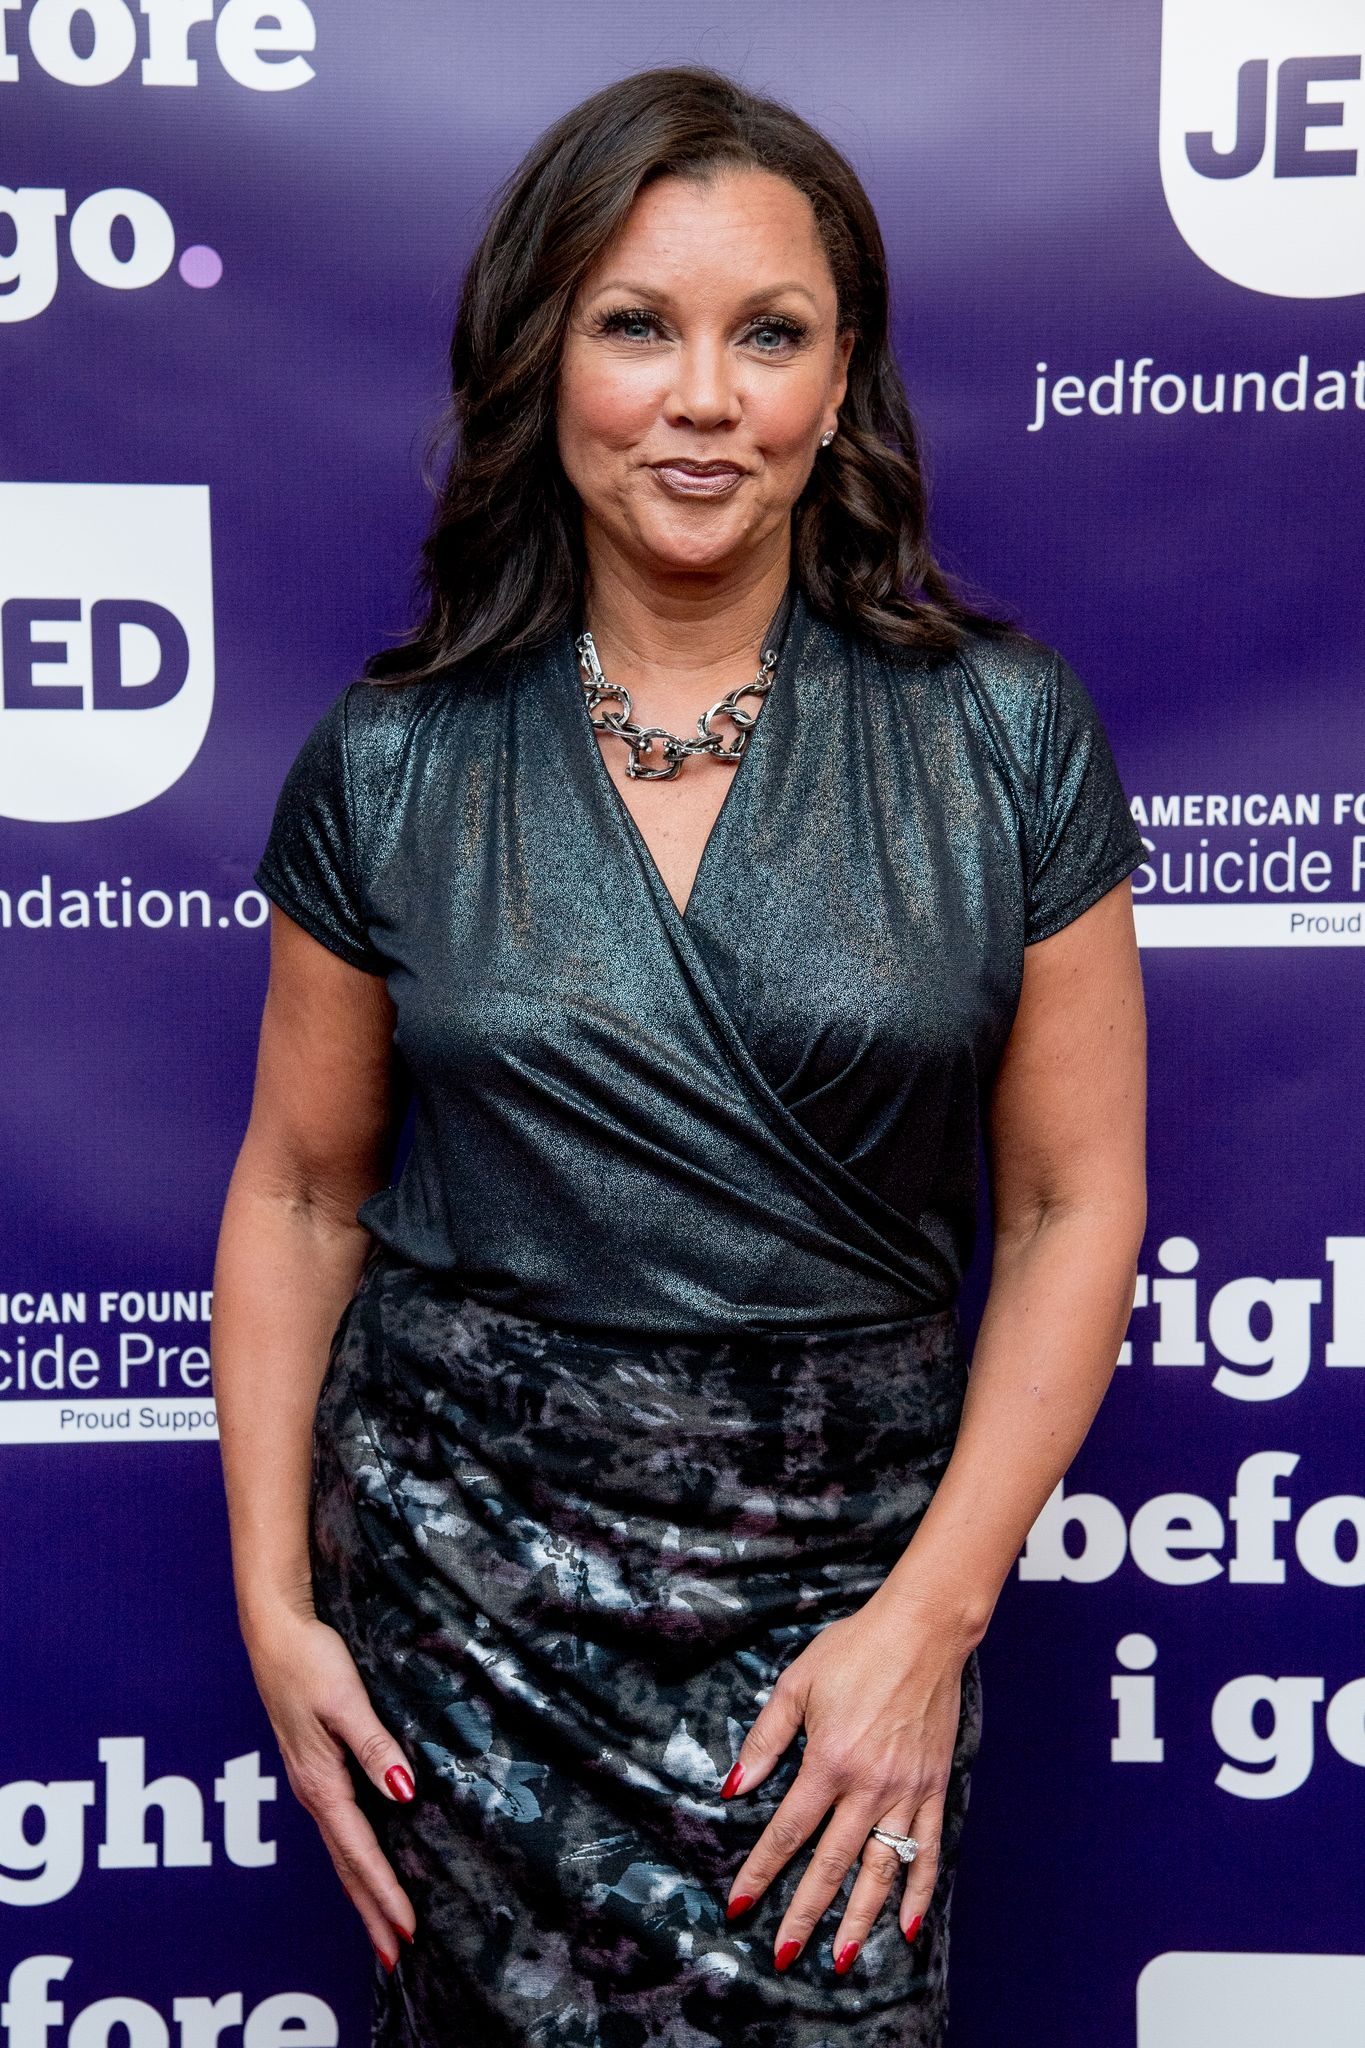 Vanessa Williams at a benefit performance on December 4, 2017 in New York. | Photo: Getty Images